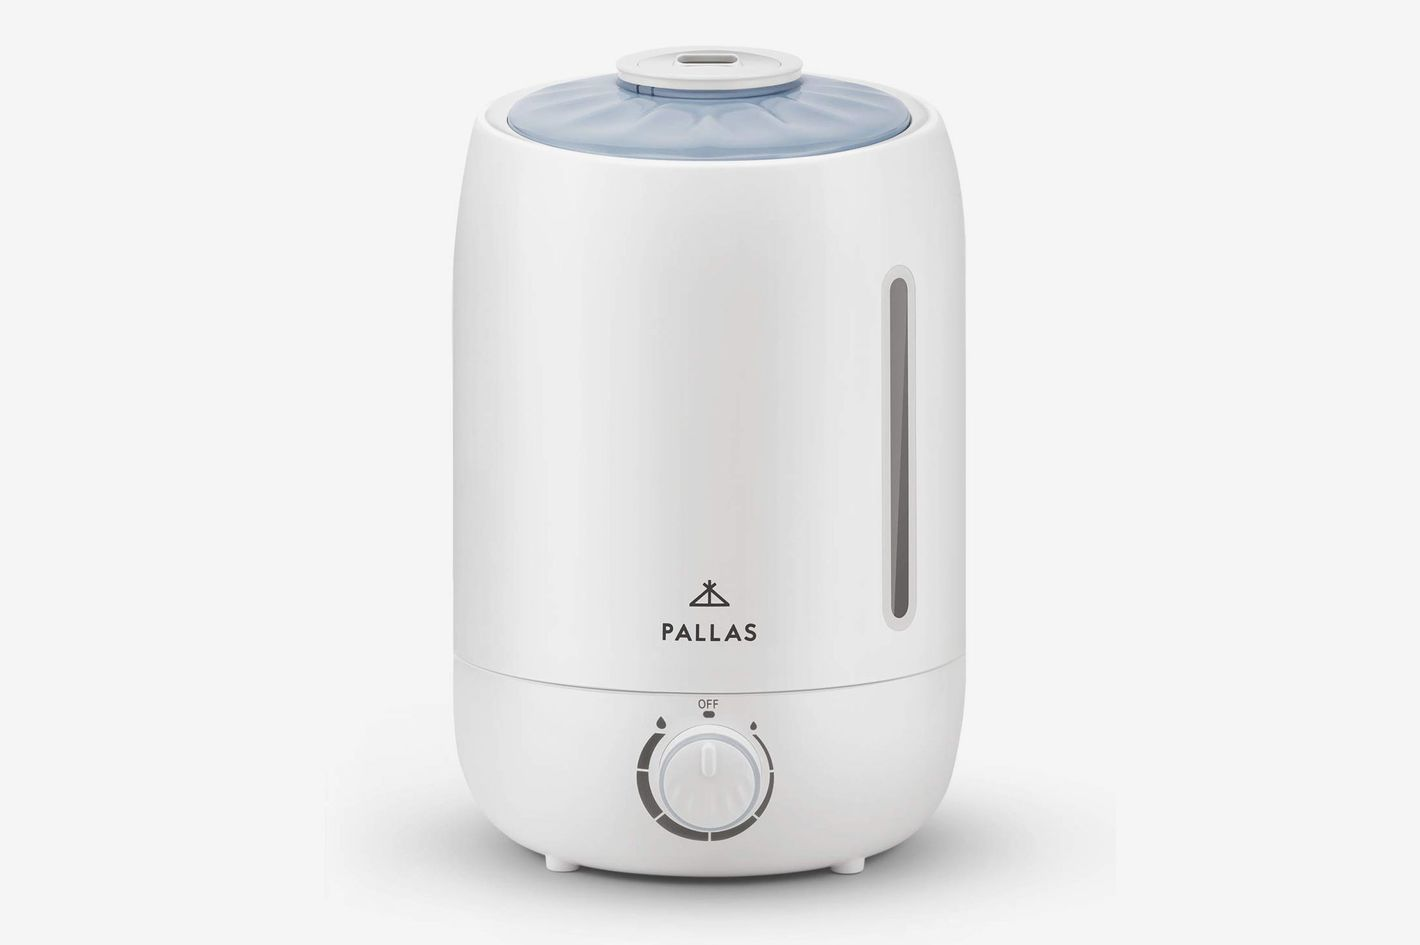 Pallas 2019 Humidifier